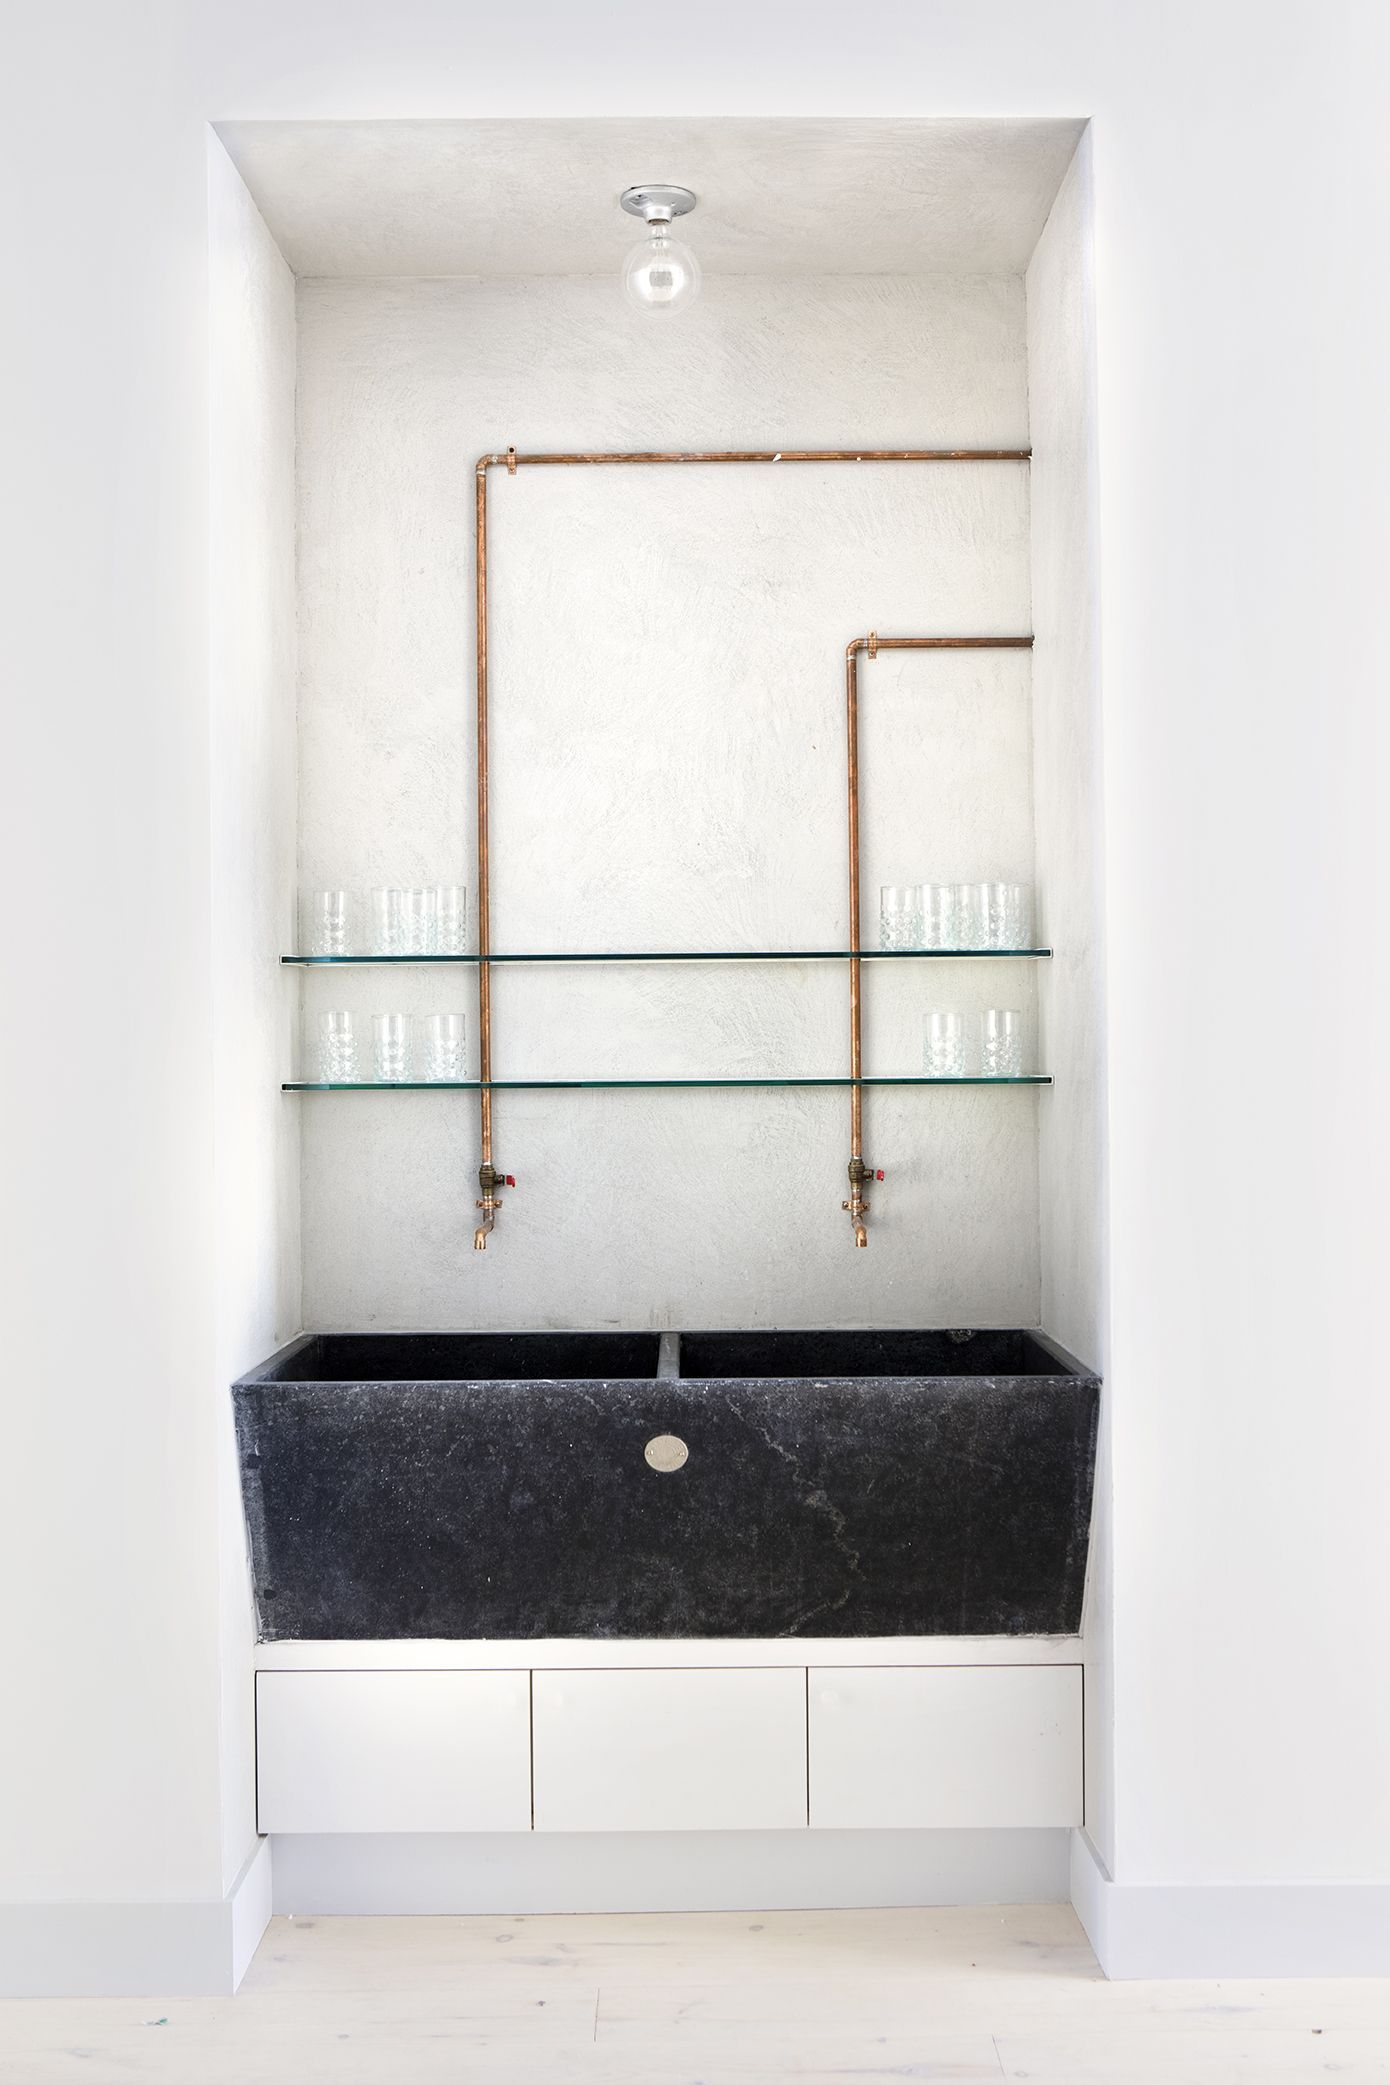 hgtvcom by perfect in nip william book built eyagci small storage tuck shower canada bathrooms for bathroom ci of remodeling rend com solutions